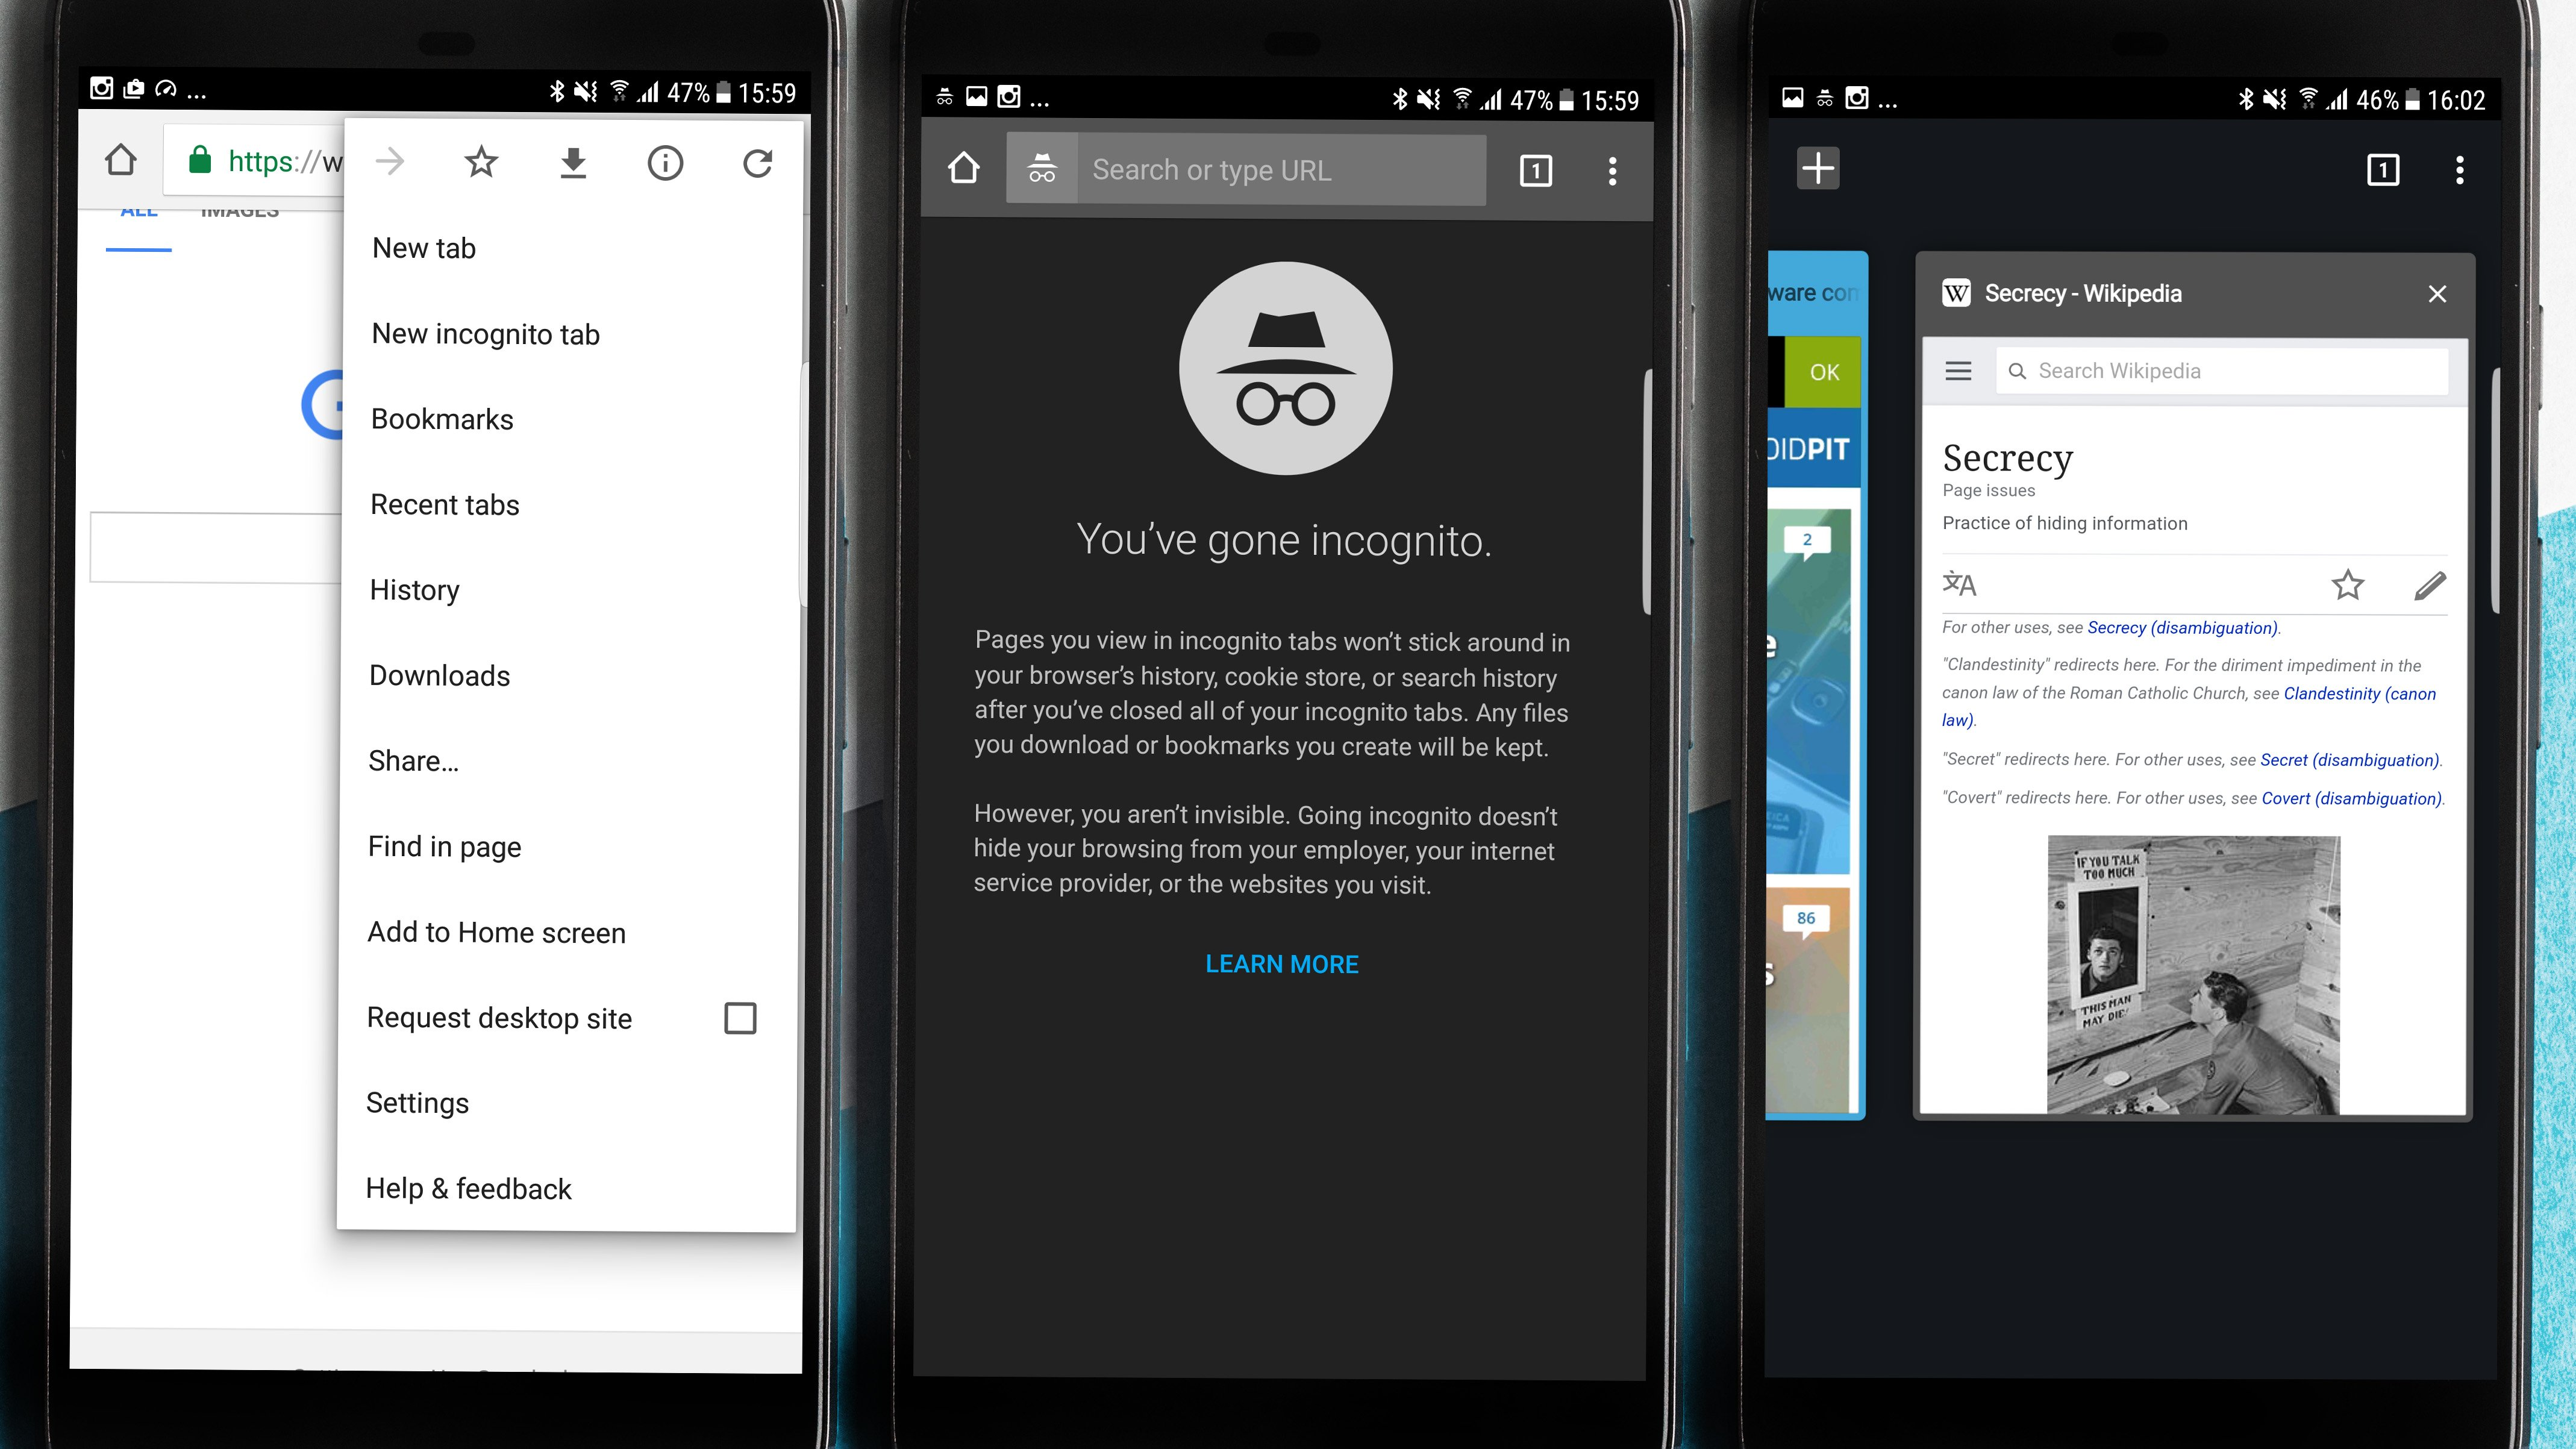 Private browsing: how to use incognito mode on Android